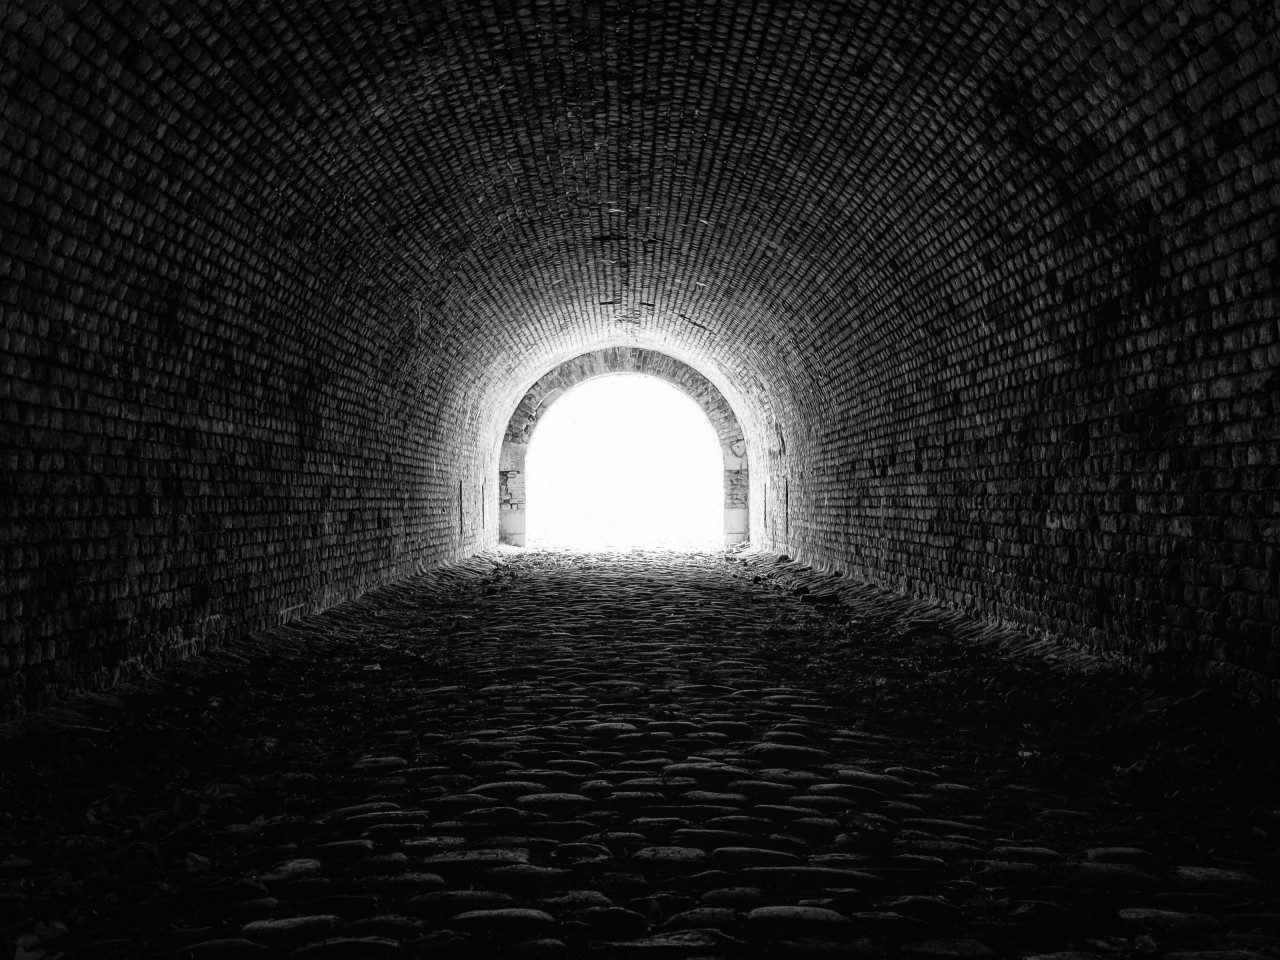 Light at the end of the tunnel wallpaper 1280x960